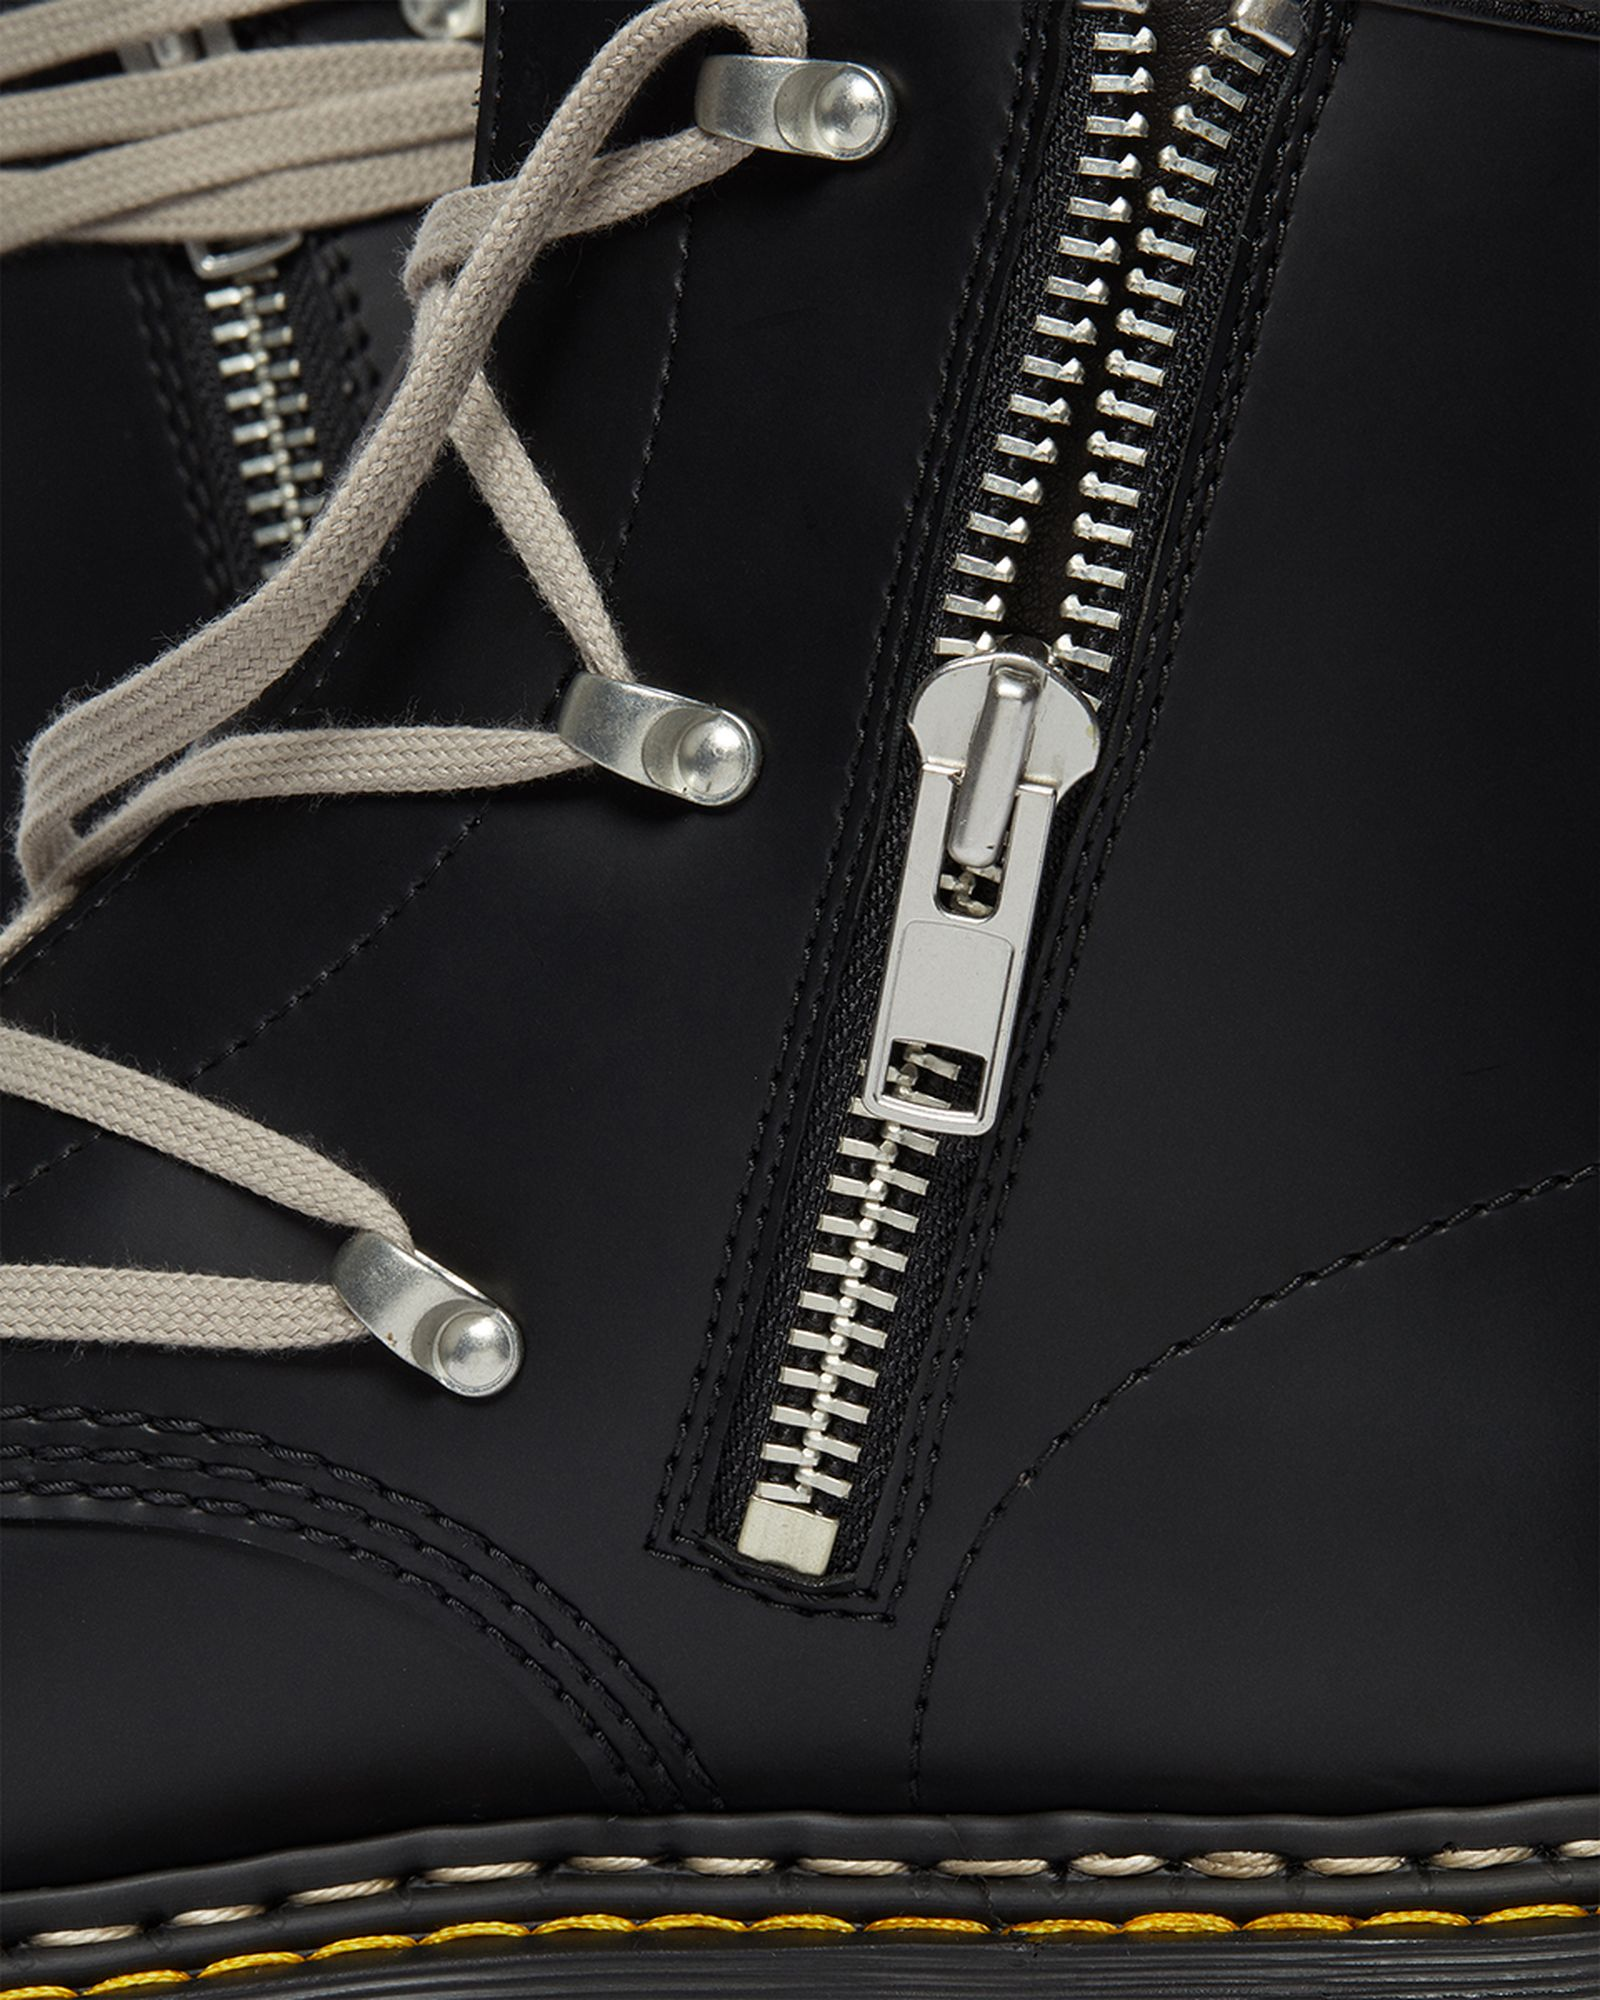 rick-owens-dr-martens-1460-bex-release-date-price-07